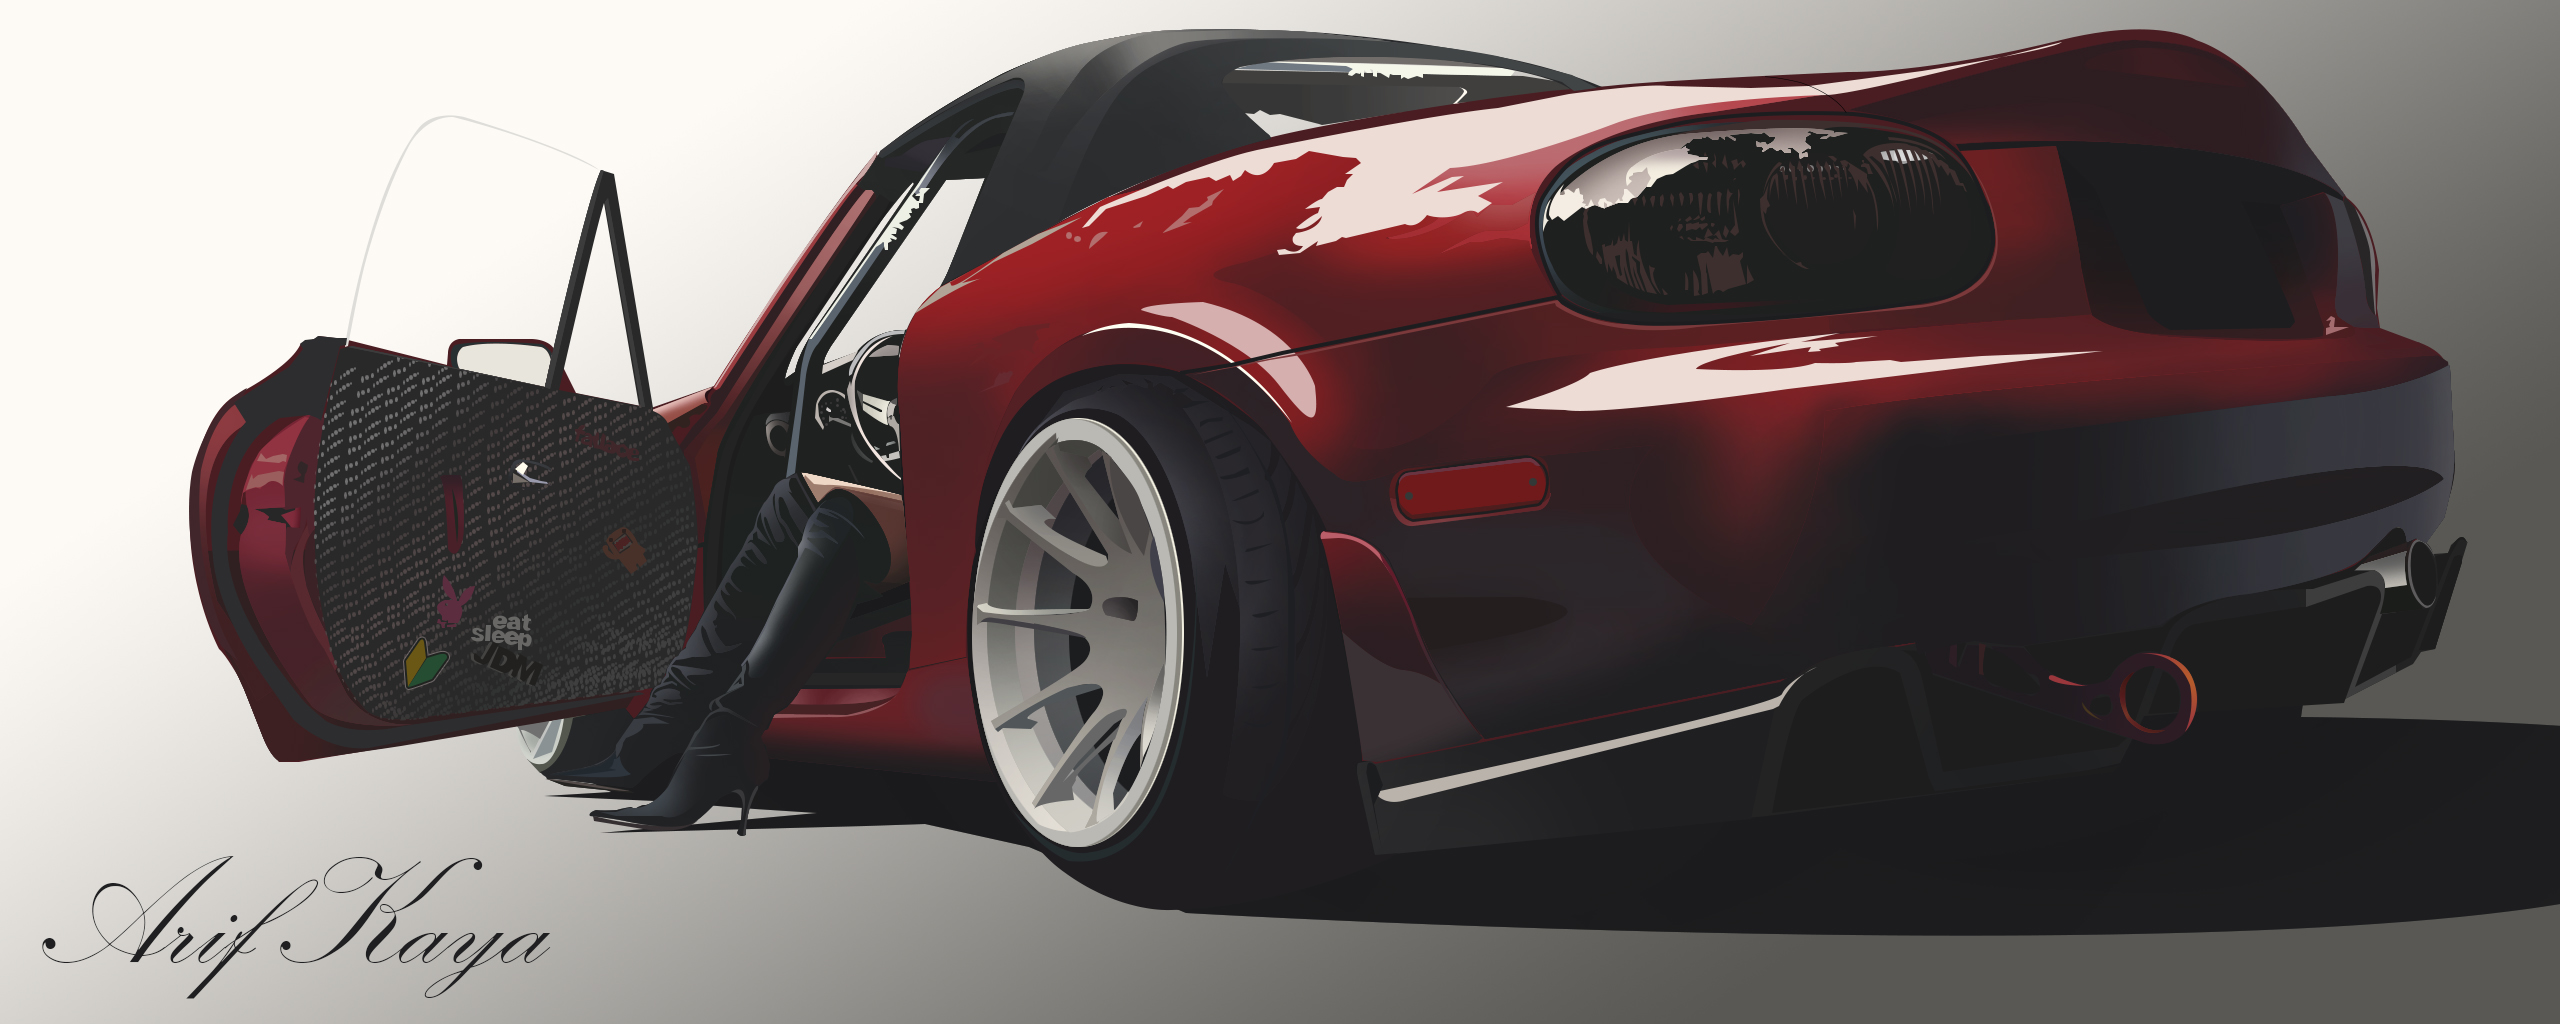 Photoshop Mazda miata(mx5) �izim